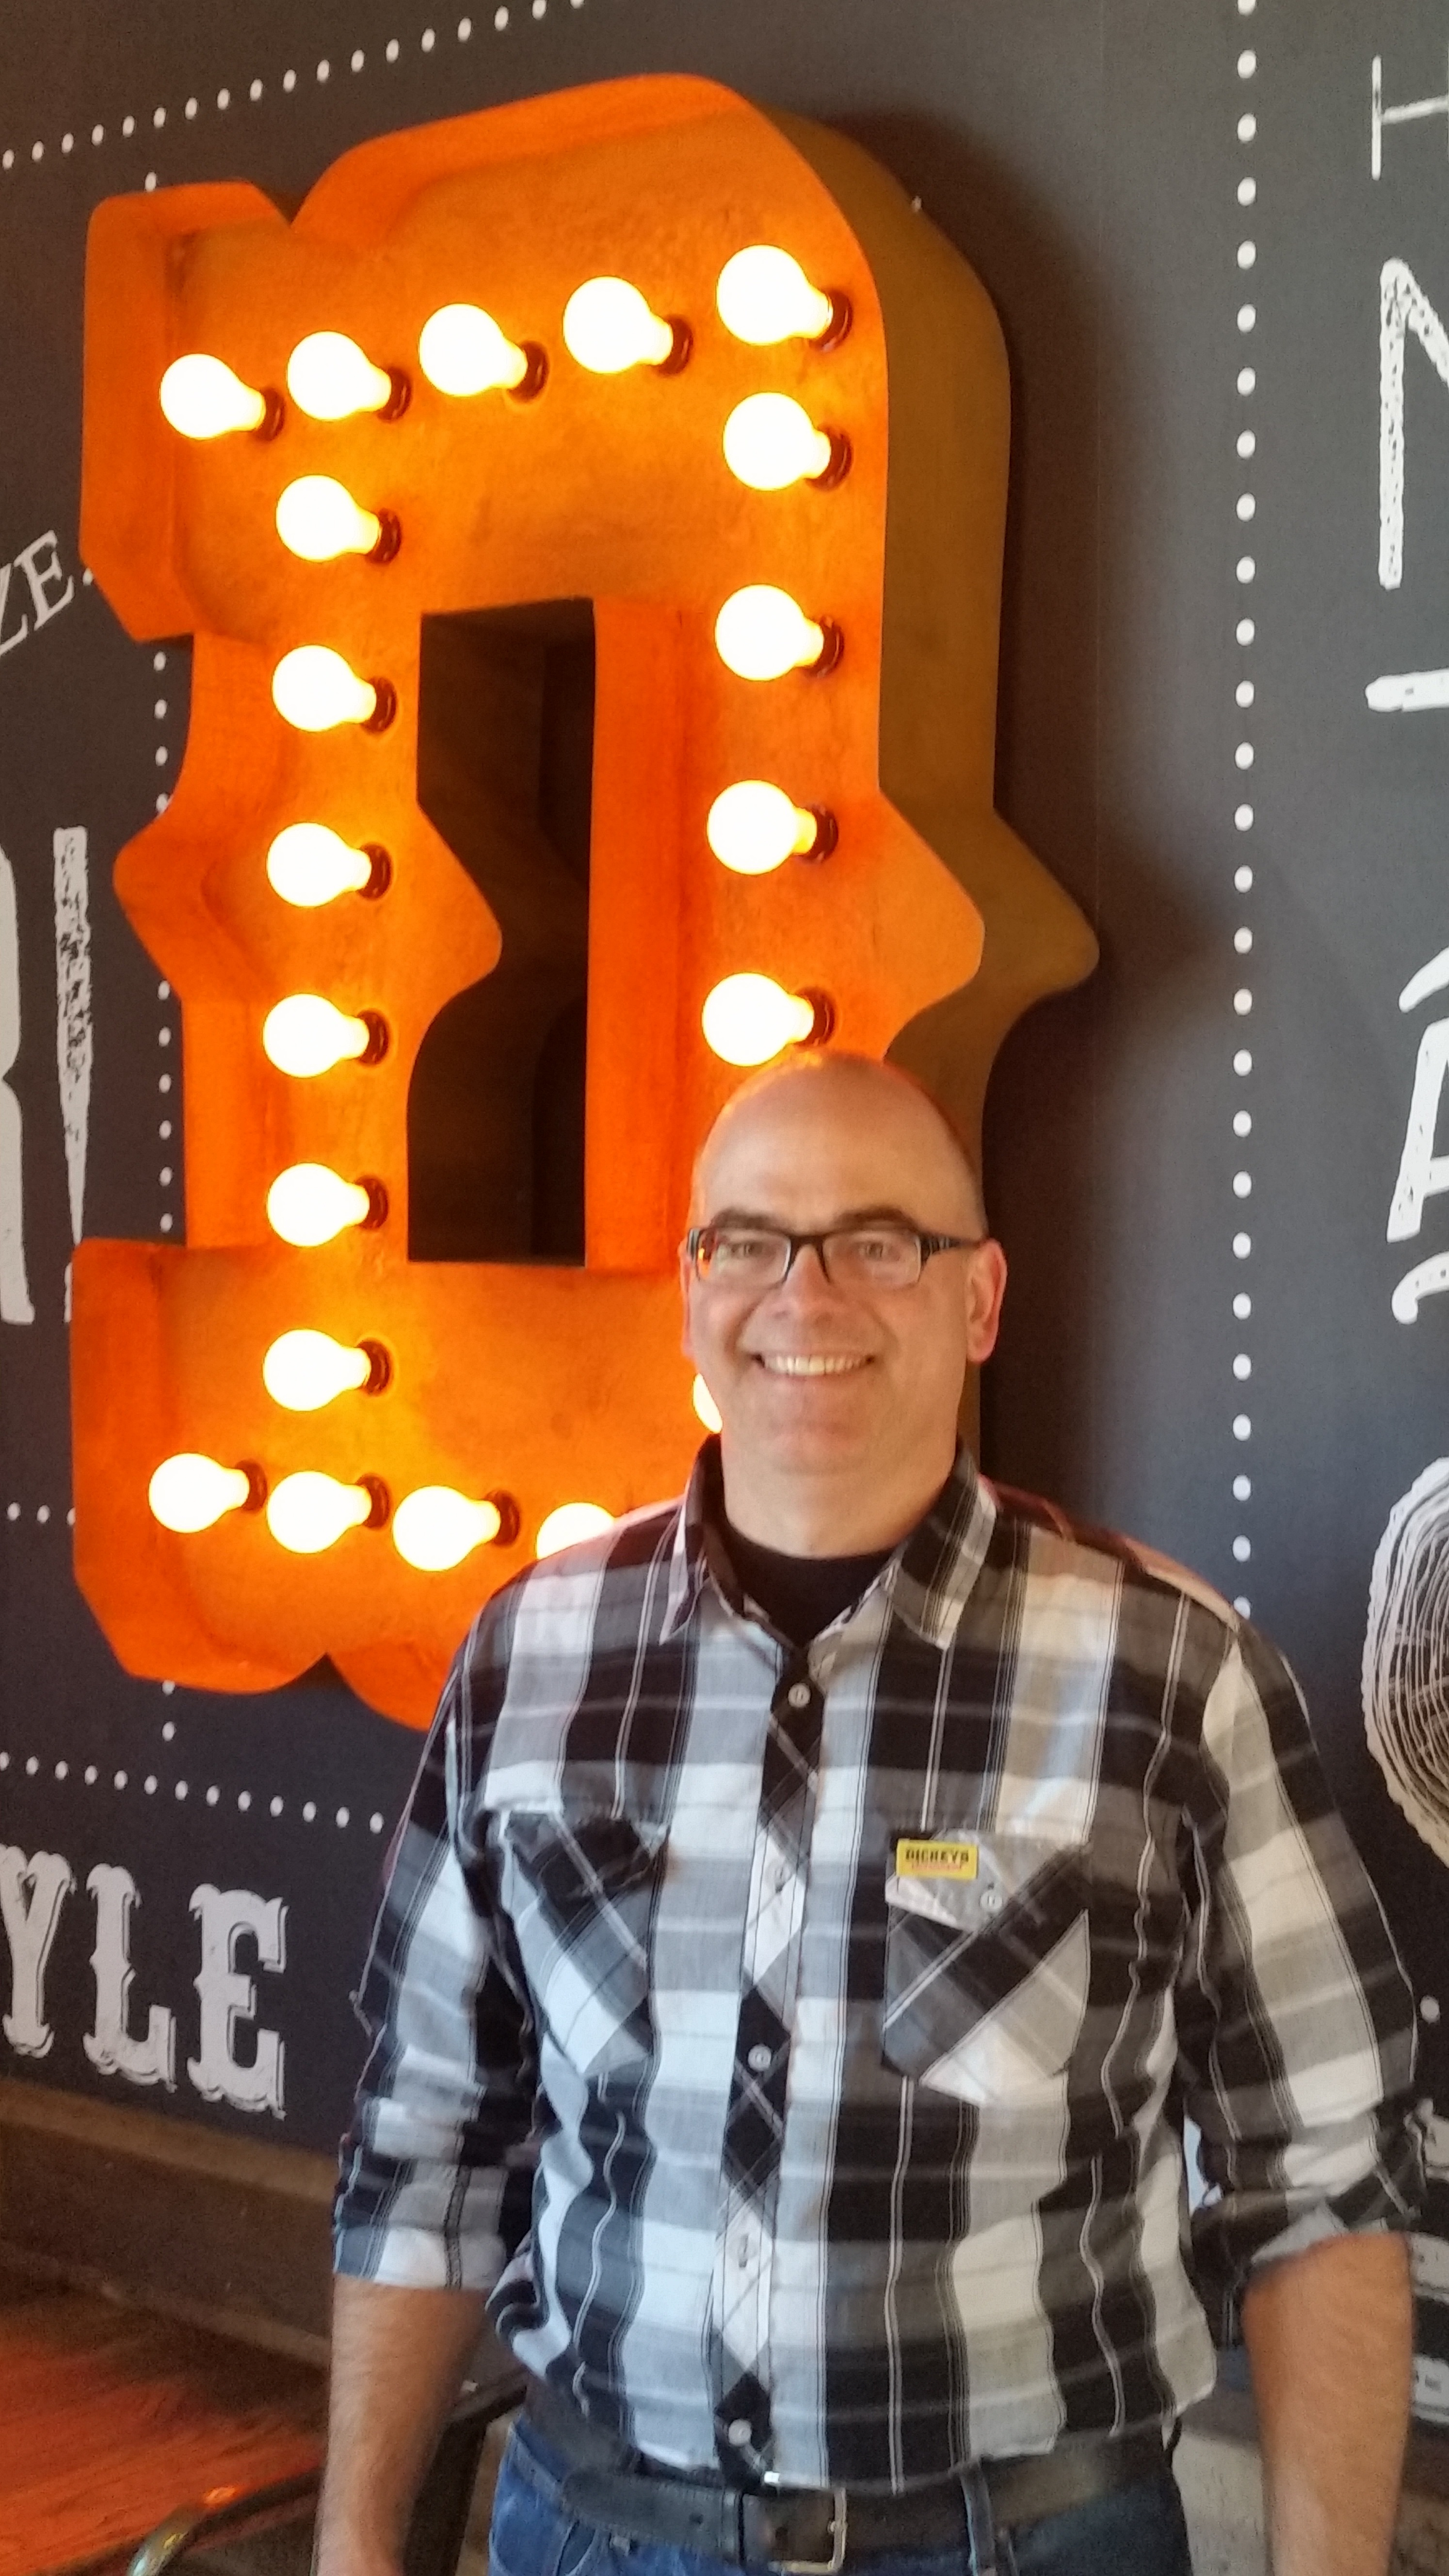 Dickey's Barbecue Pit Serves Up Delicious, Texas-Style Barbecue to the People of Gurnee, IL